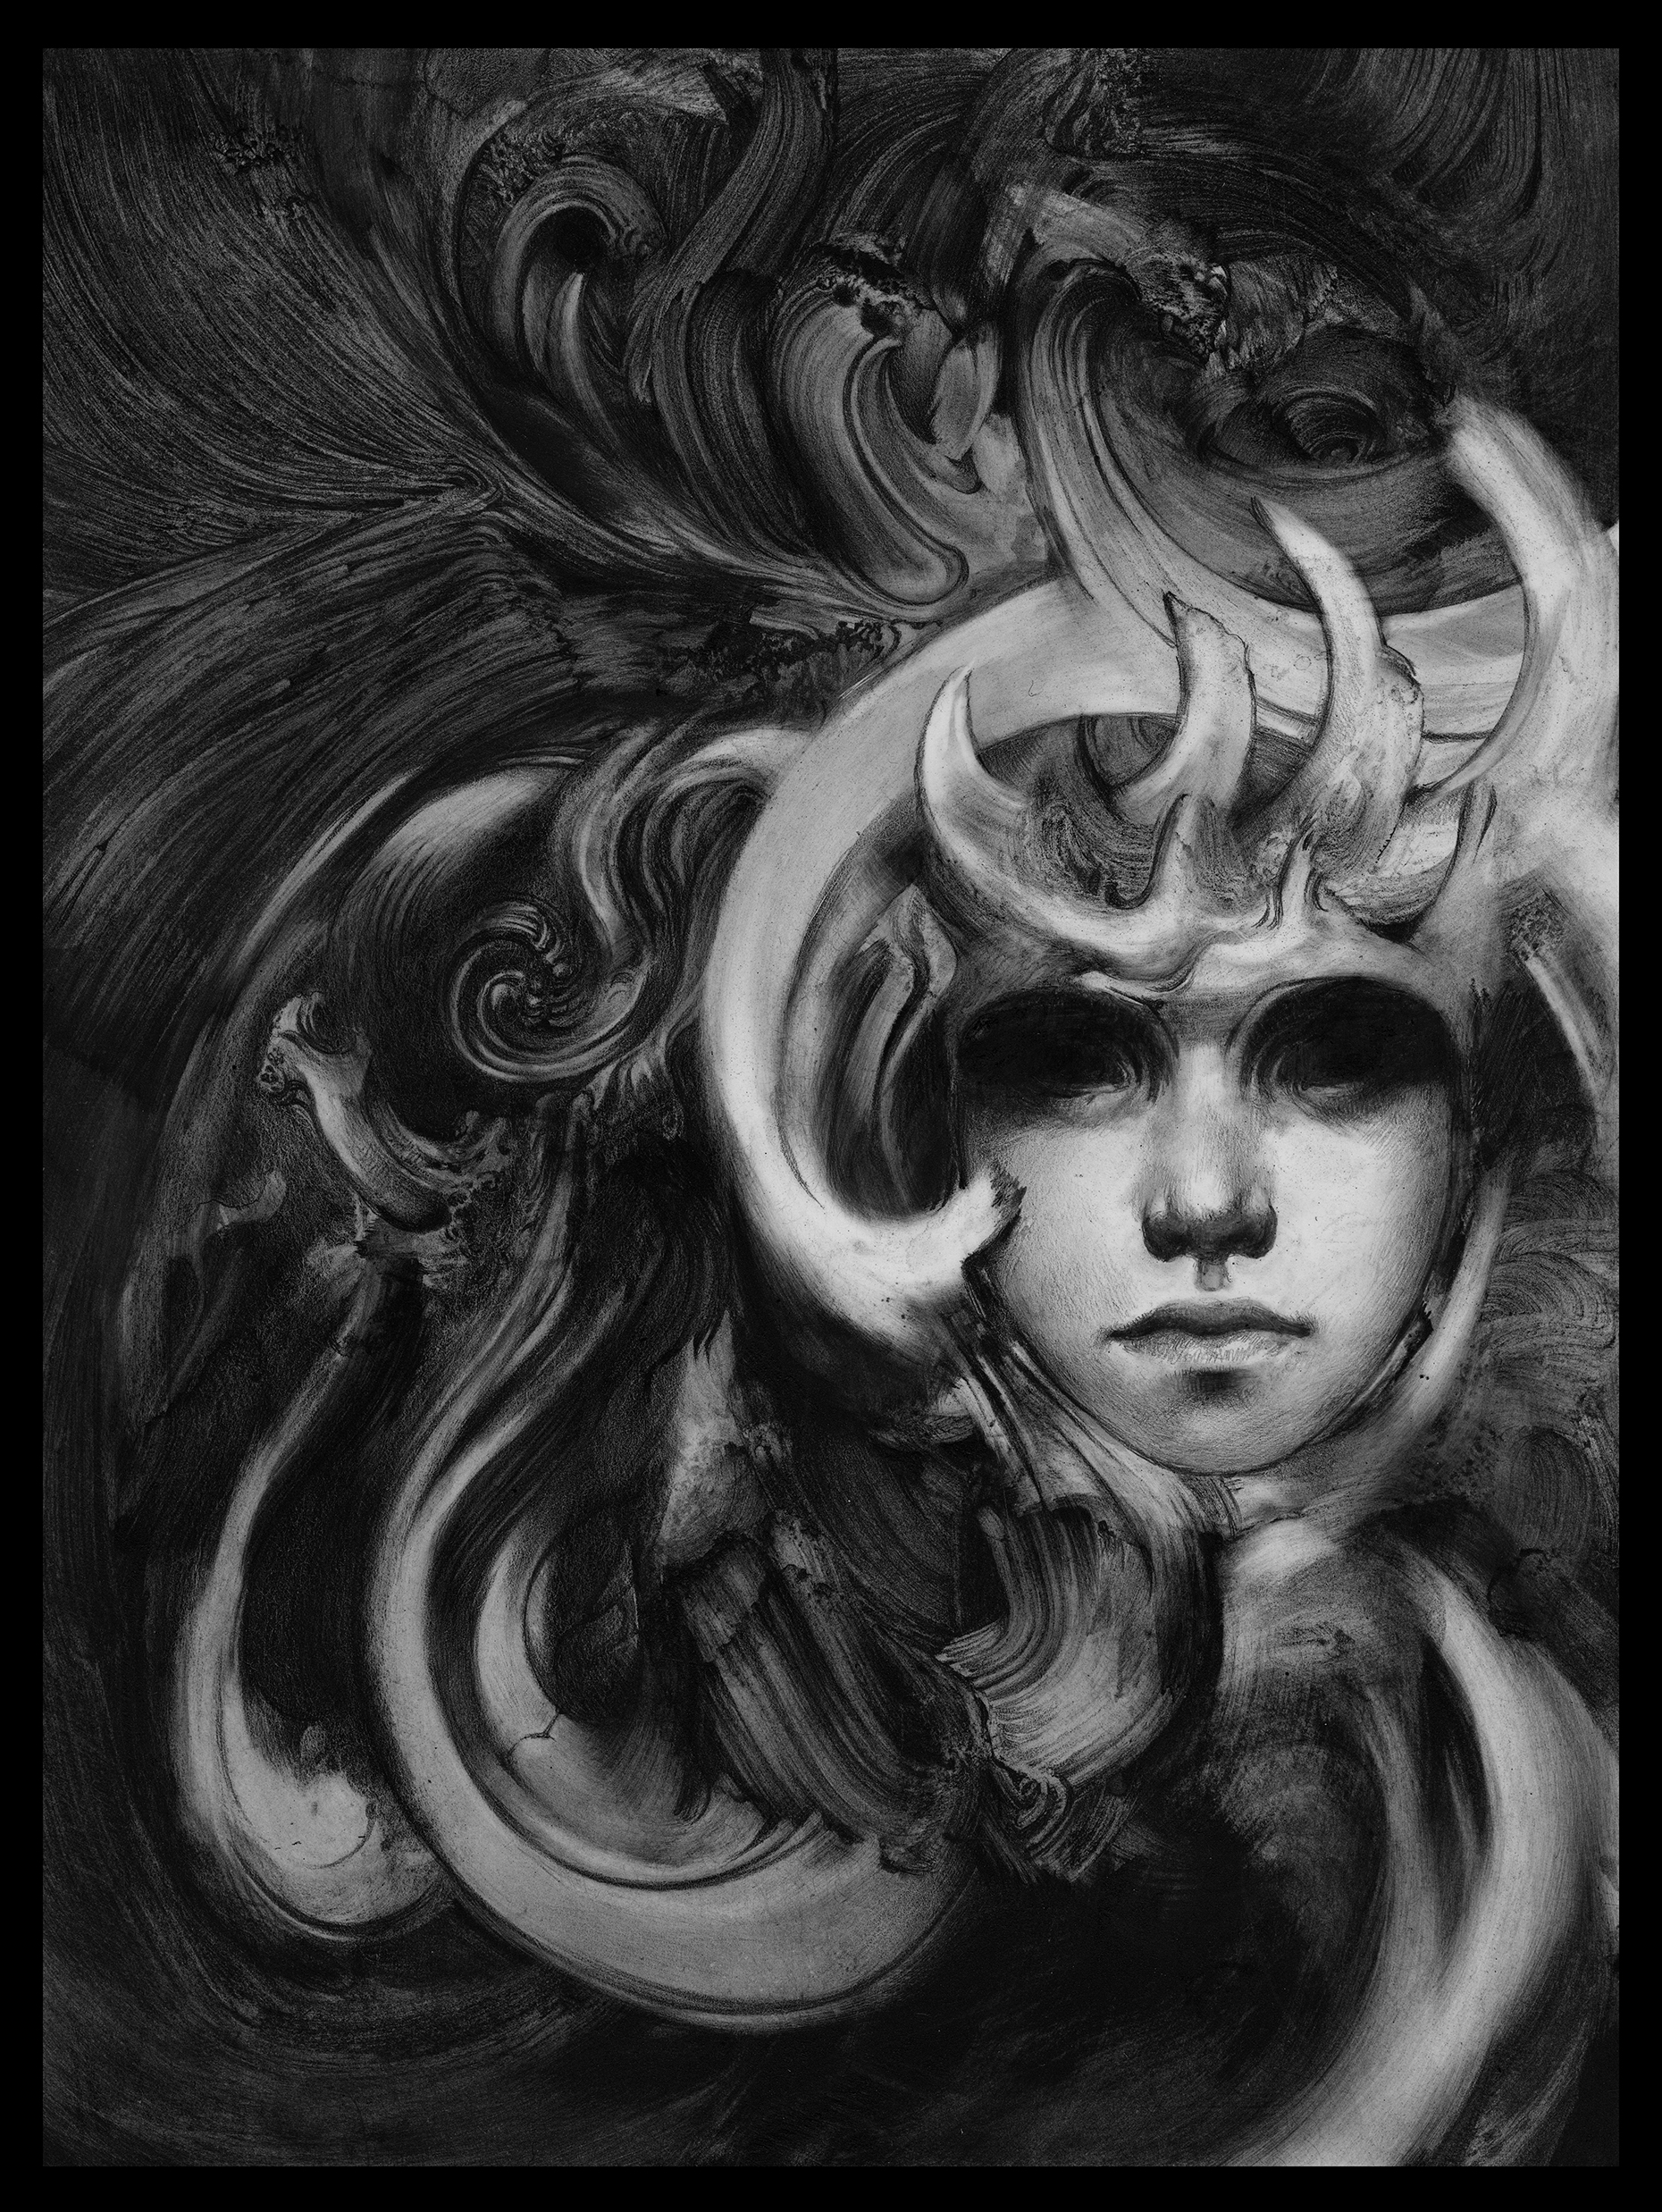 Allen Williams Black Lotus graphite art